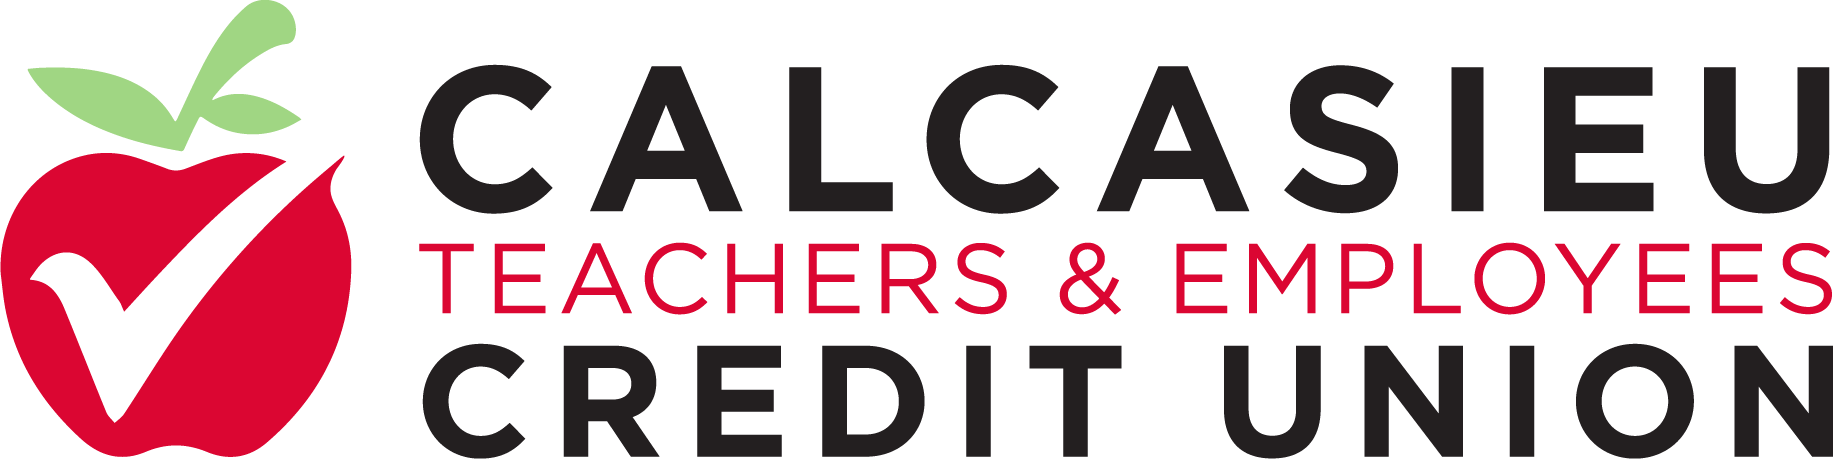 Calcasieu Teachers and Employees Credit Union